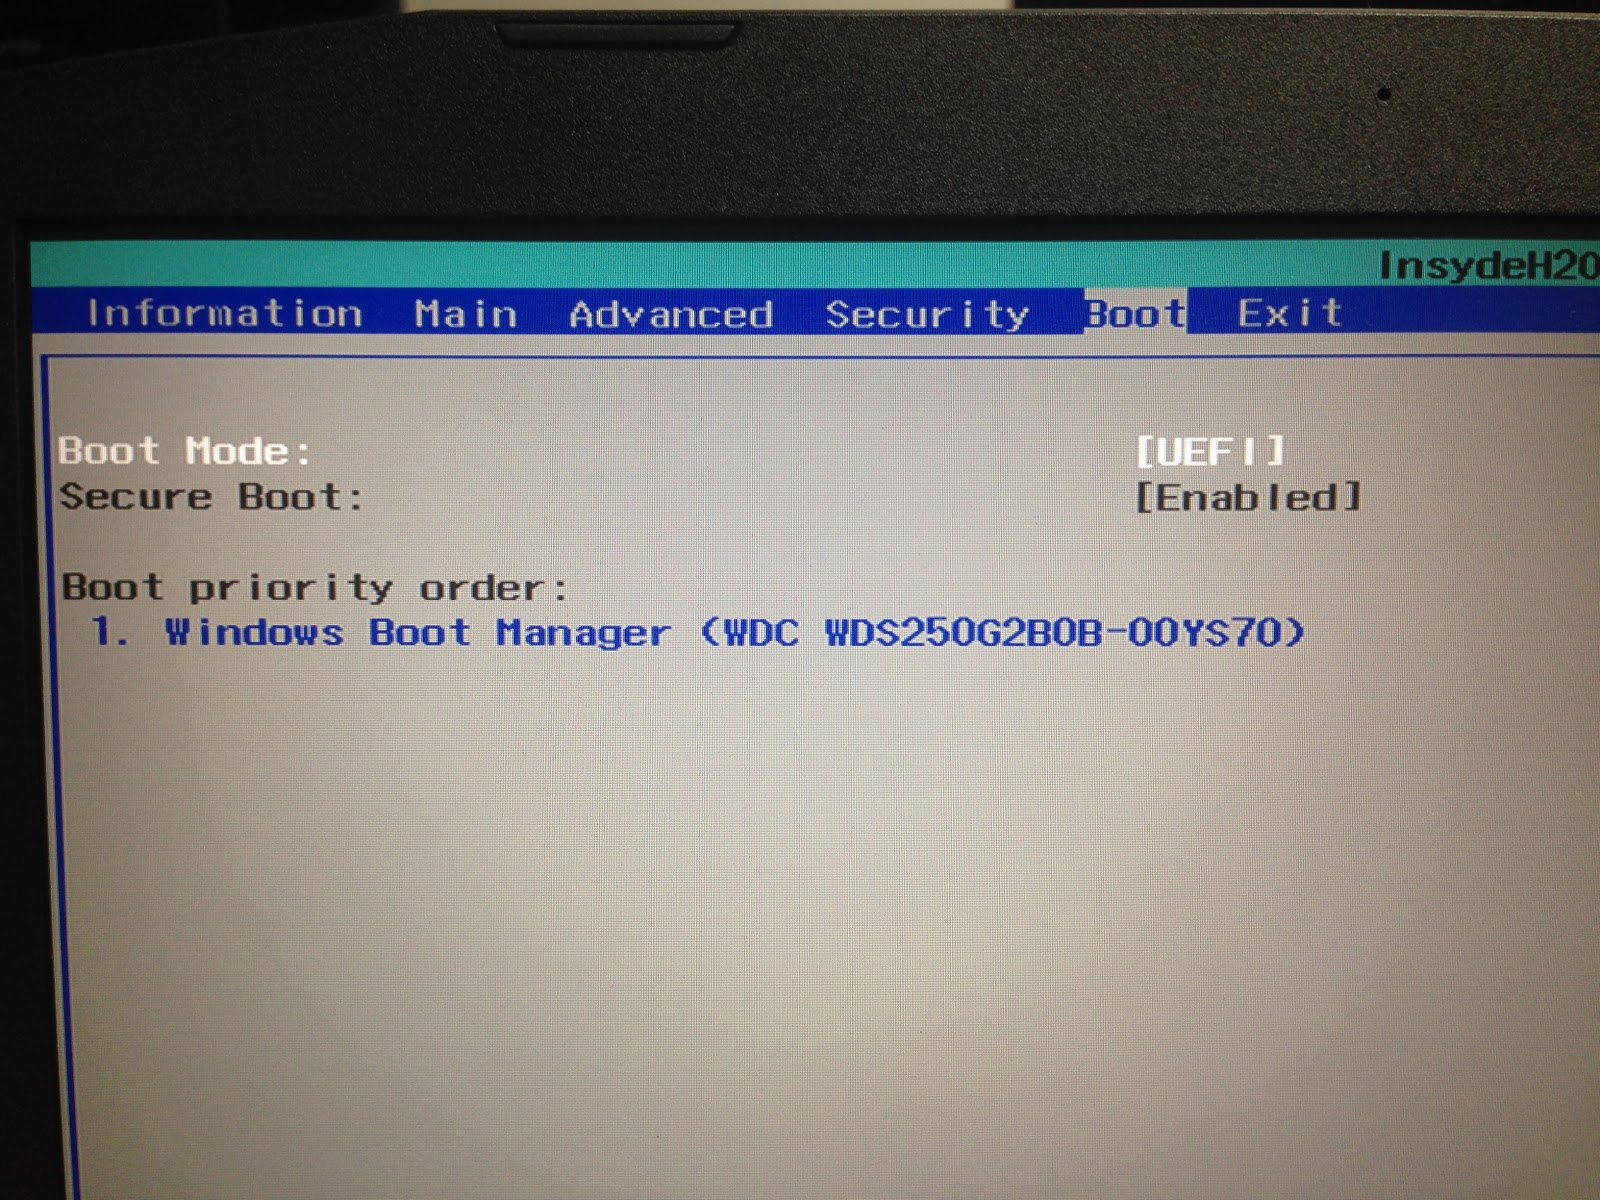 How to disable secure boot in uefi mode - IT Bolt